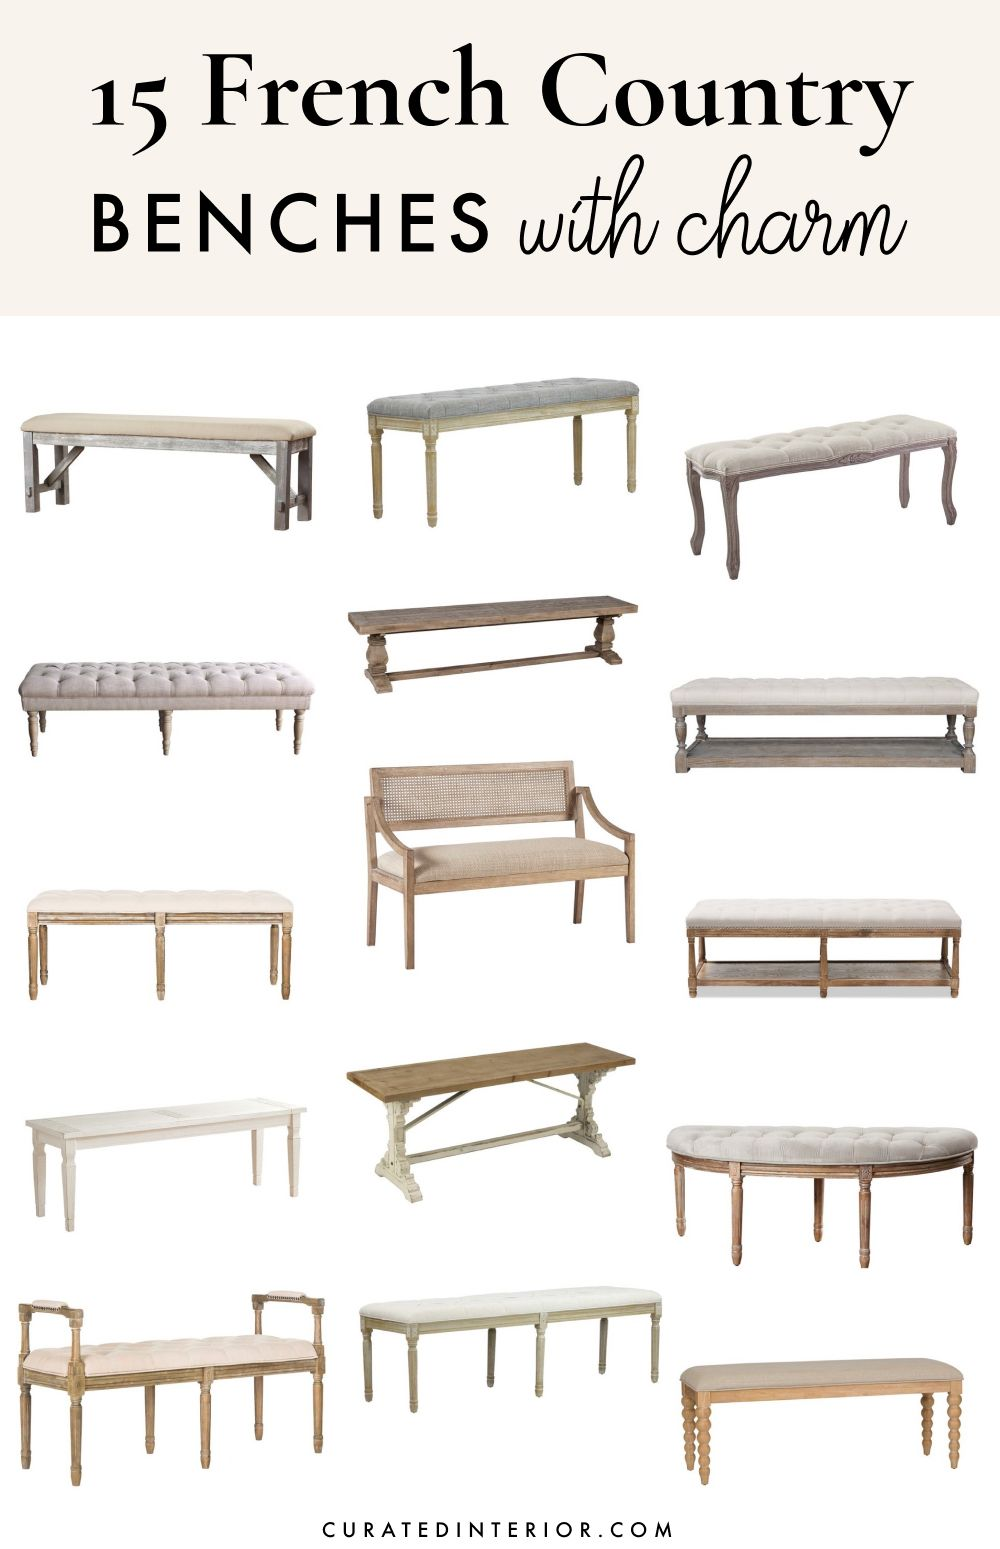 15 French Country Benches with Charm